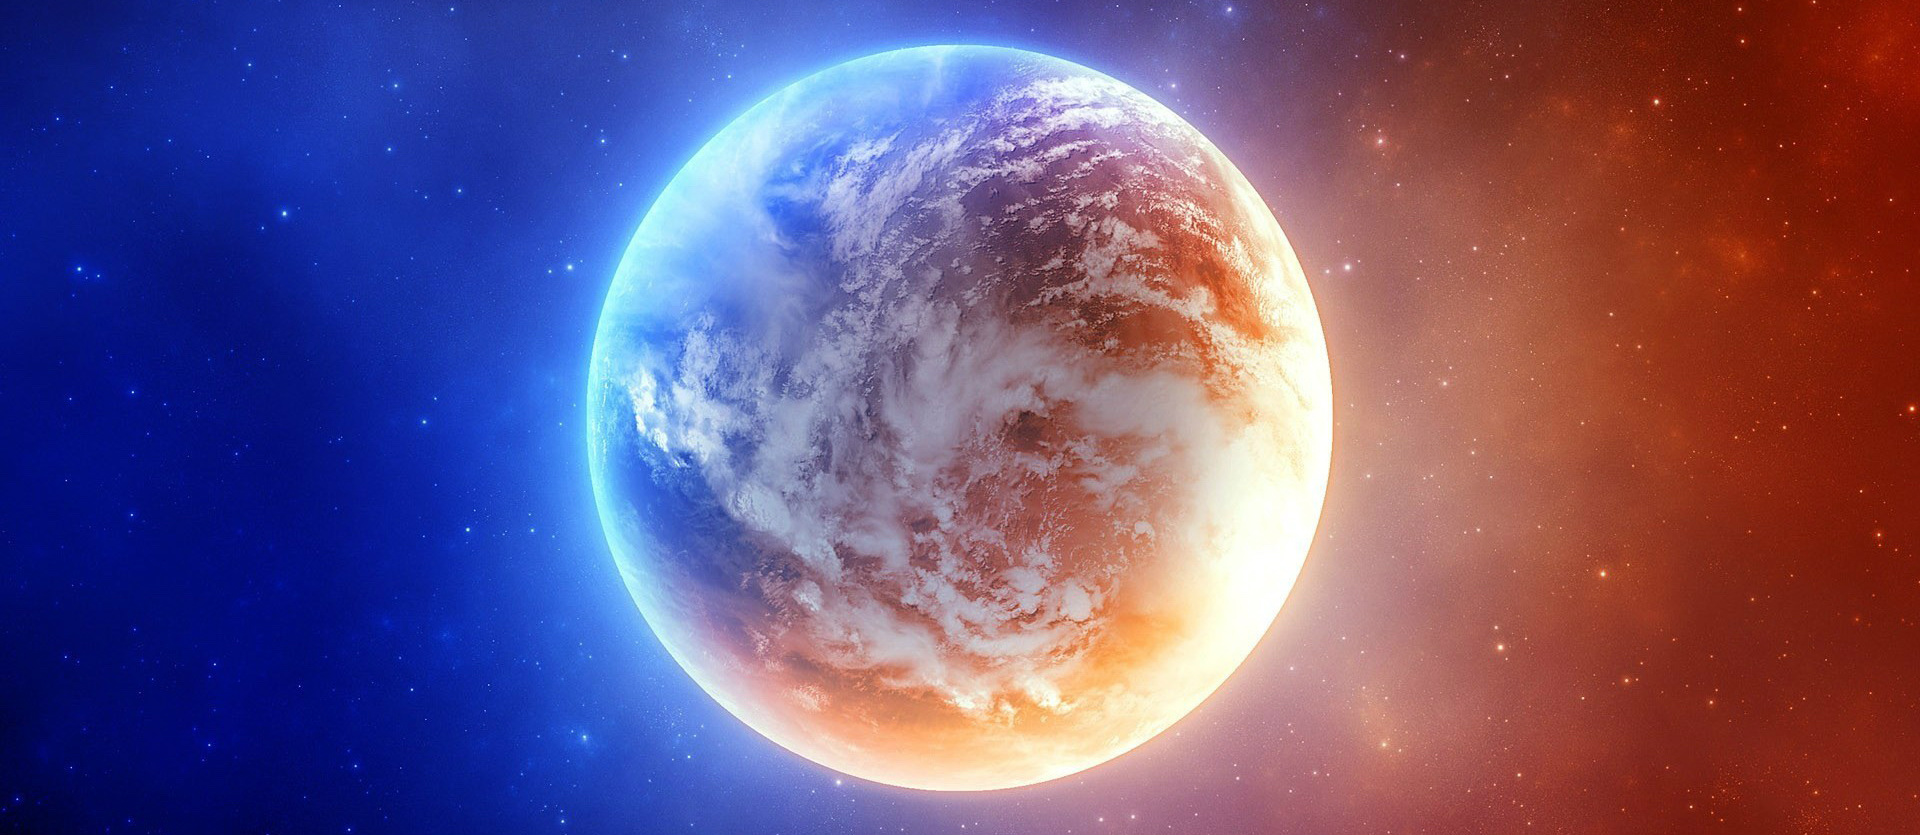 SKIRMISH OF THE PLANET OF BLUE AND RED - 860 BCEThe Planet of Blue and Red was a Sangheili colony that was attacked by the San'Shyuum in 860 BCE.